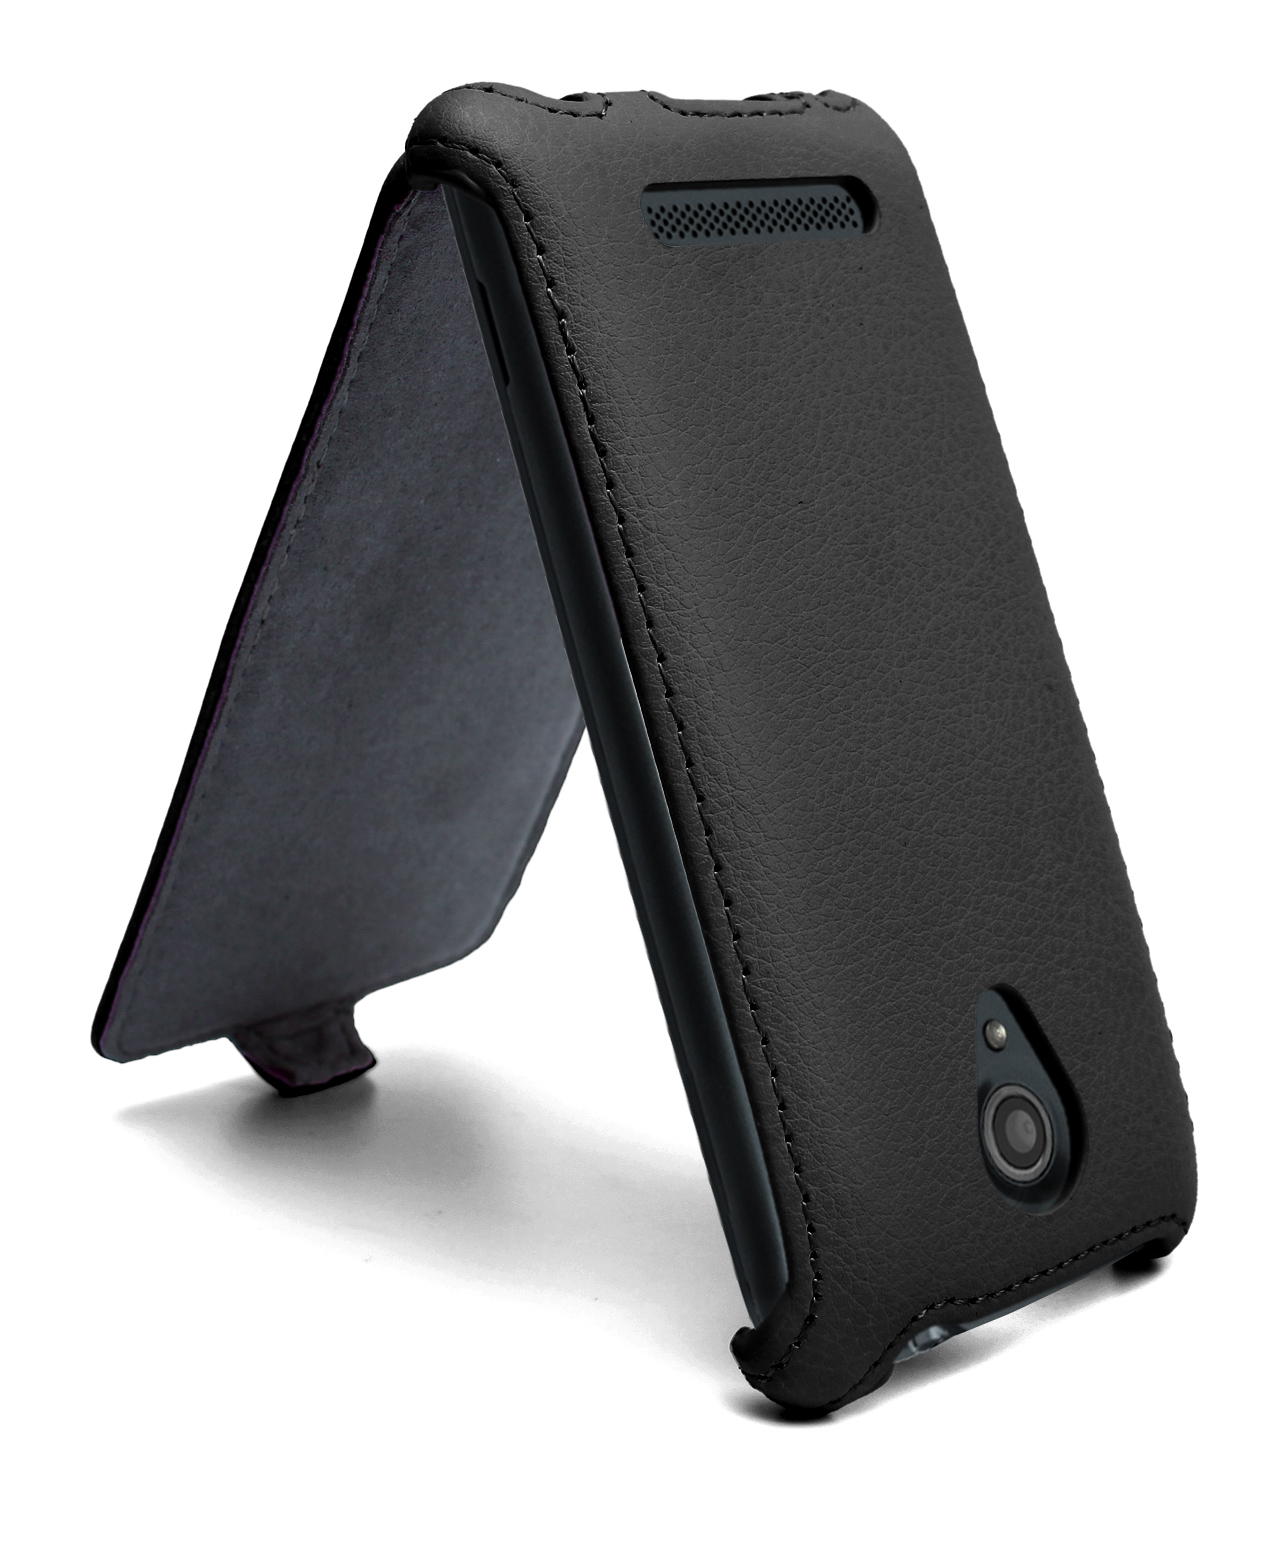 New design case for Fly IQ447 Era Life 1, hot new products for 2014